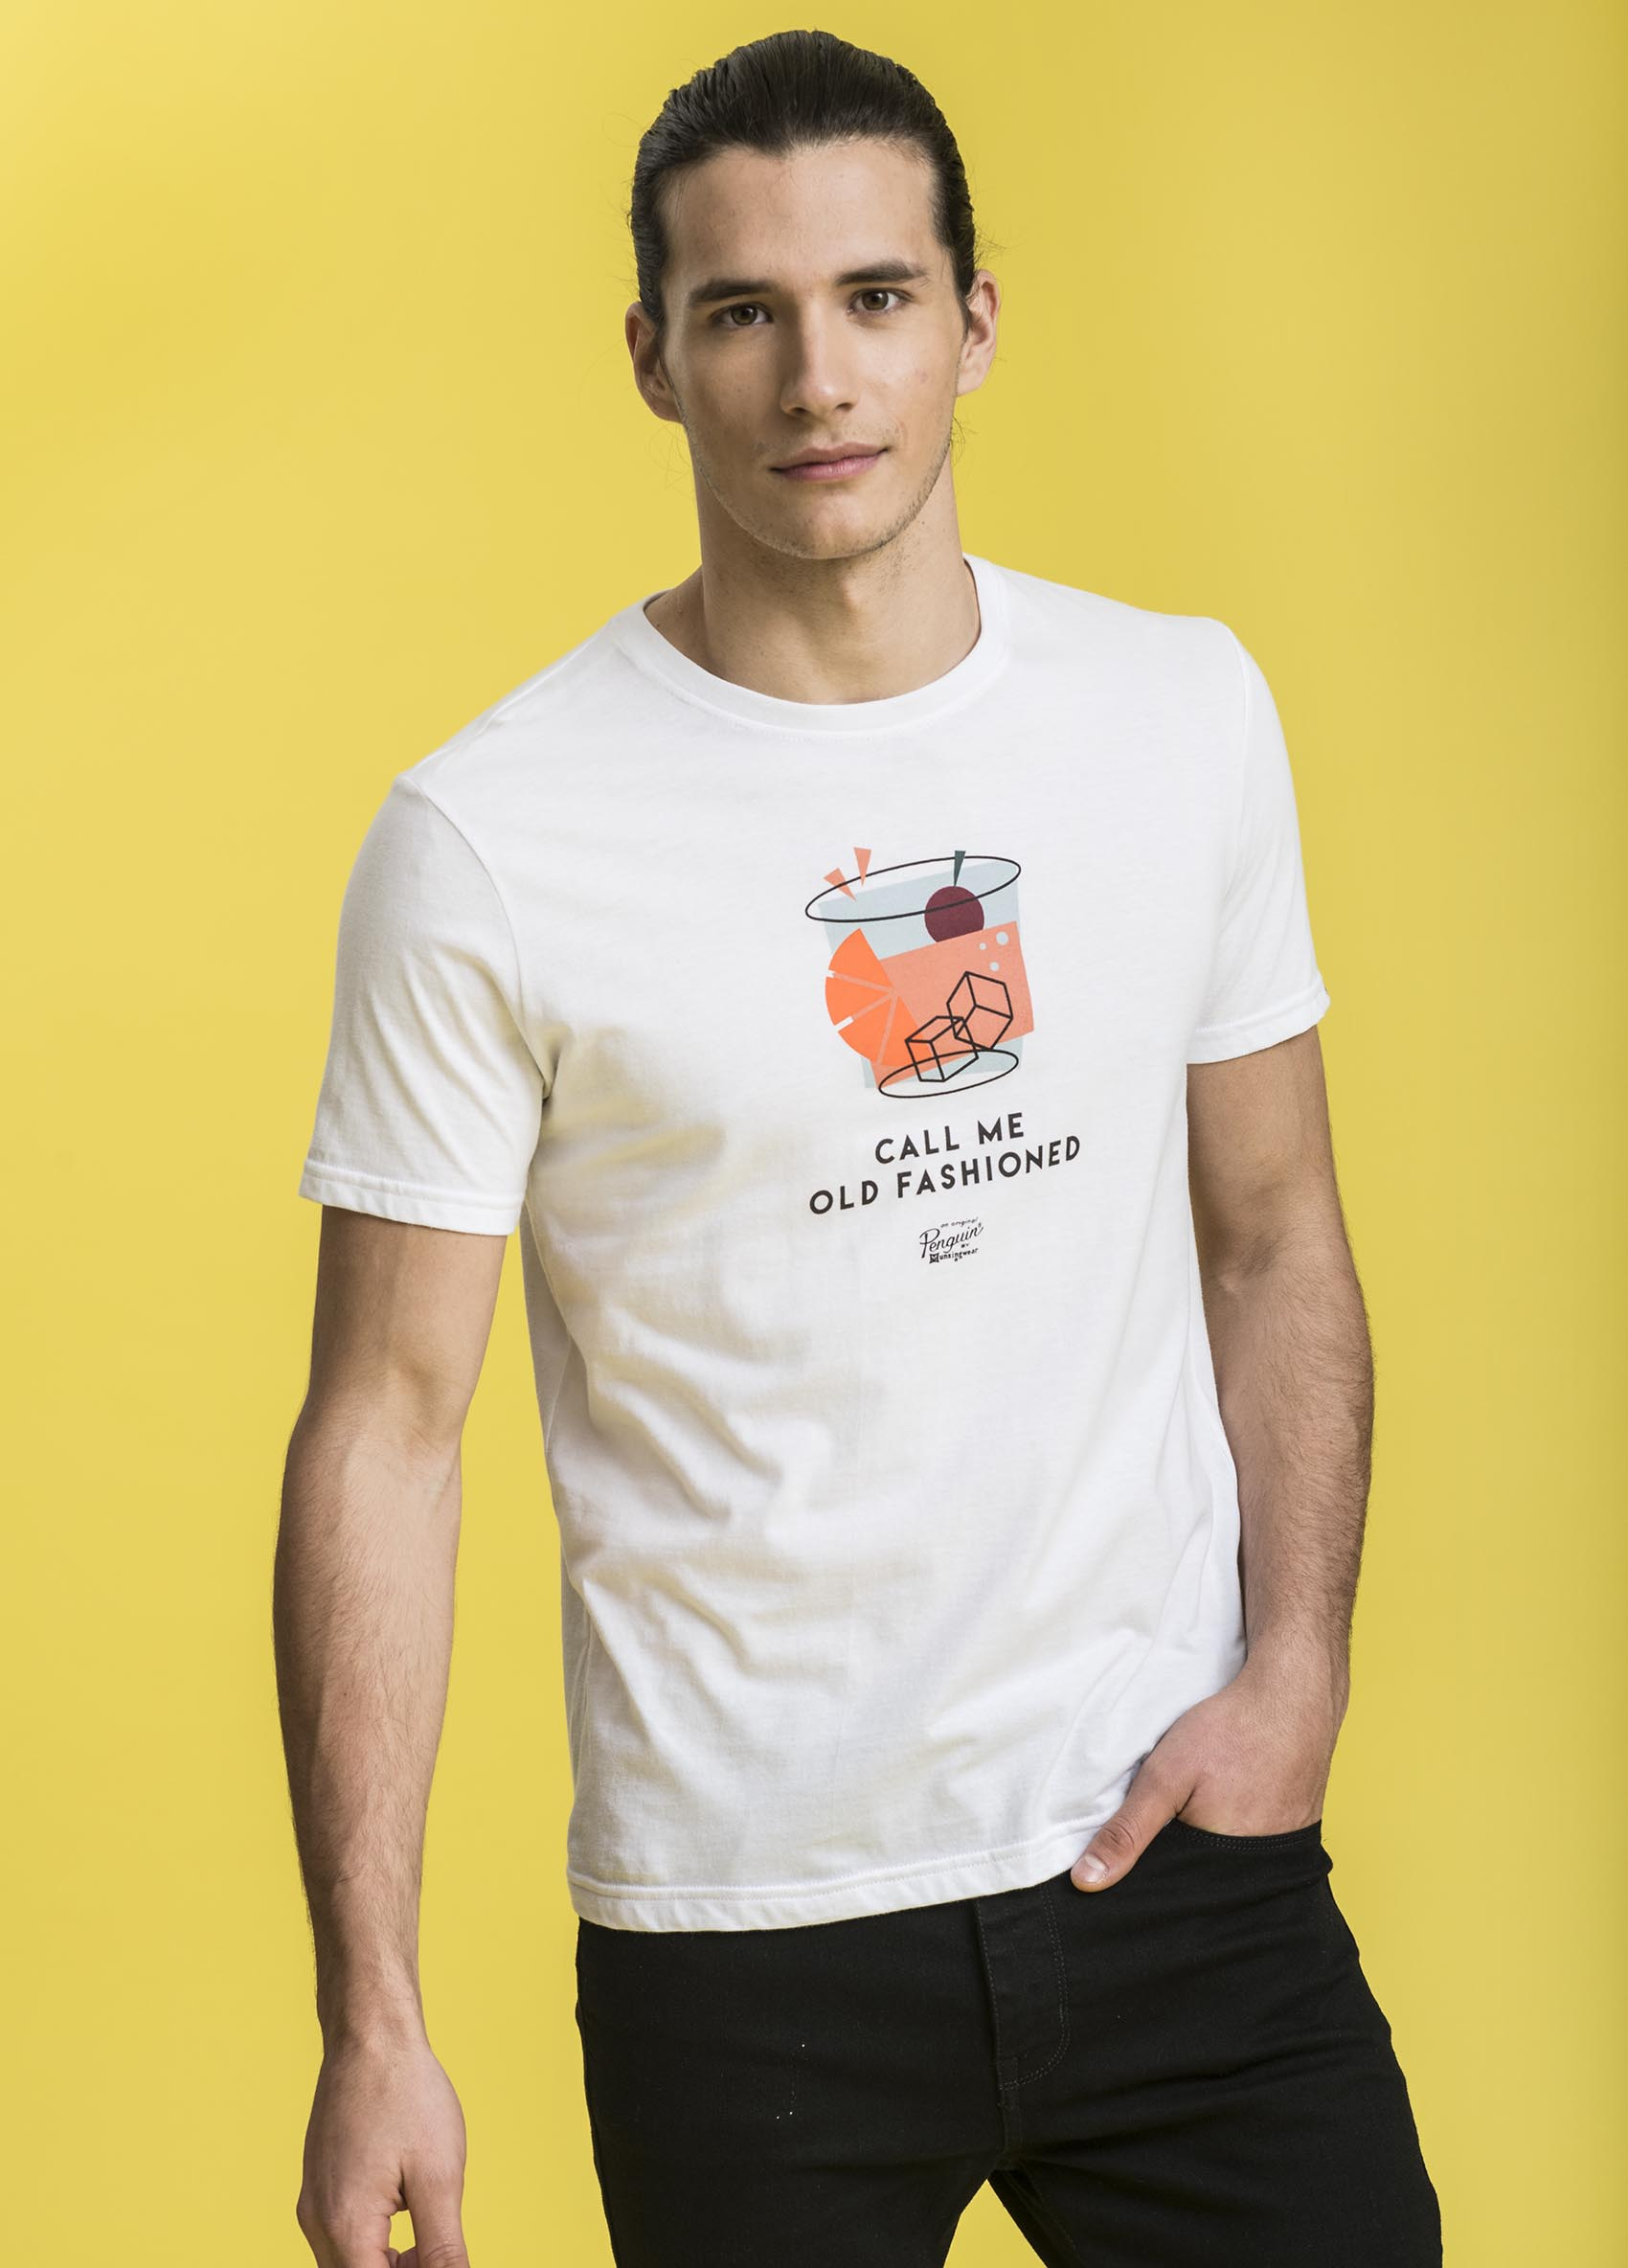 penguin_call-me-old-fashioned-tee_35-25-2019__picture-12402